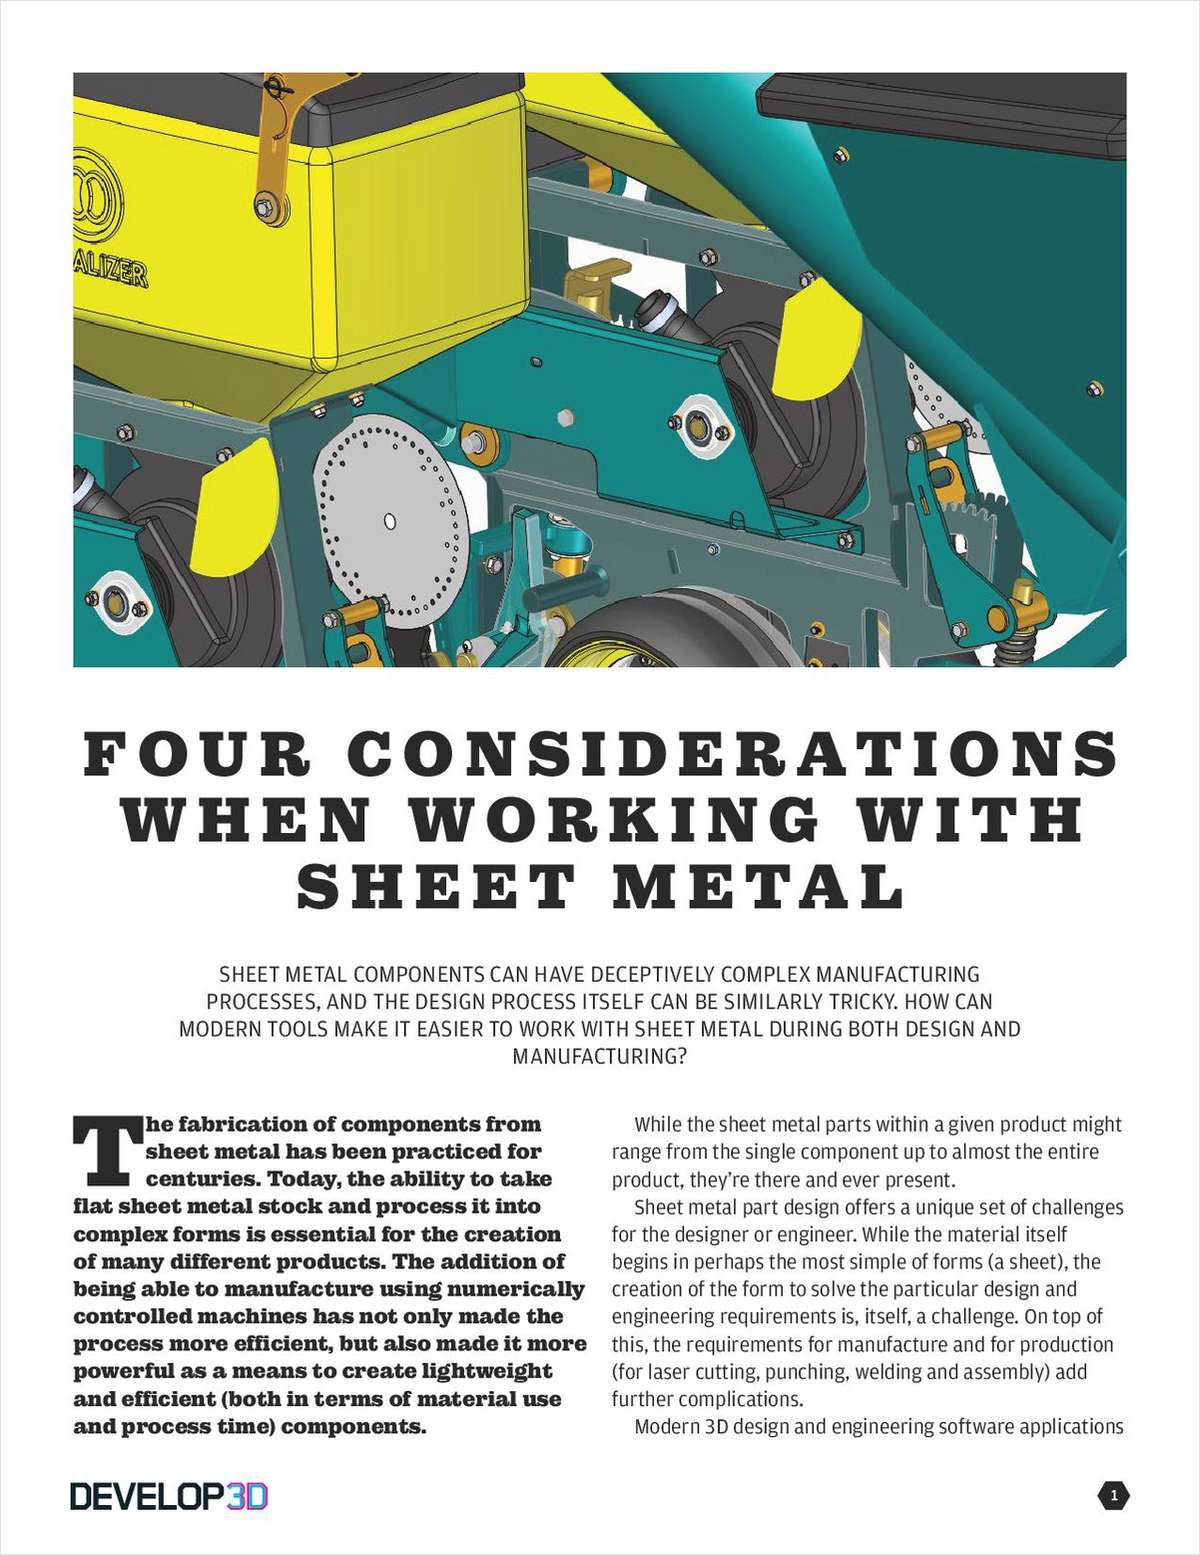 Four Considerations When Working with Sheet Metal